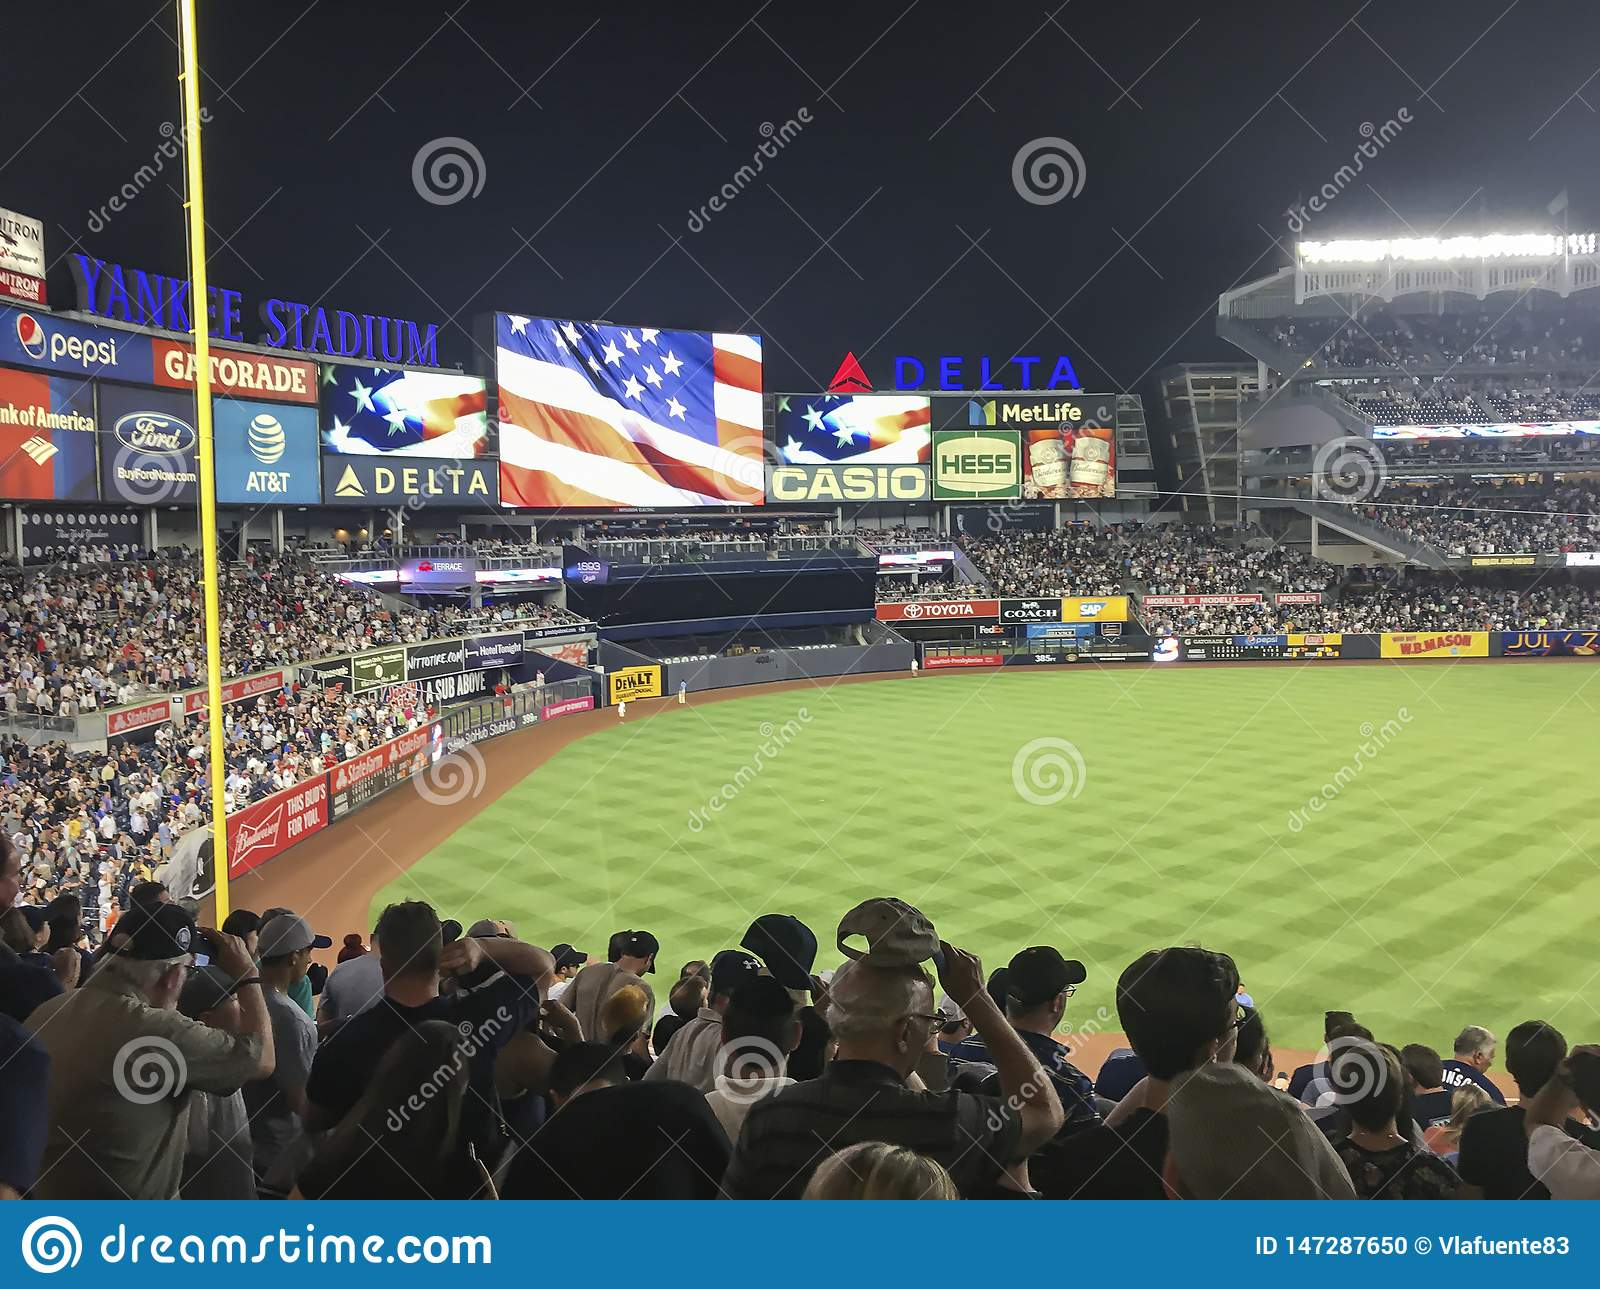 New York, USA; June 22, 2017; Match between the New York Yankees and Los Angeles Angels at Yankee Stadium